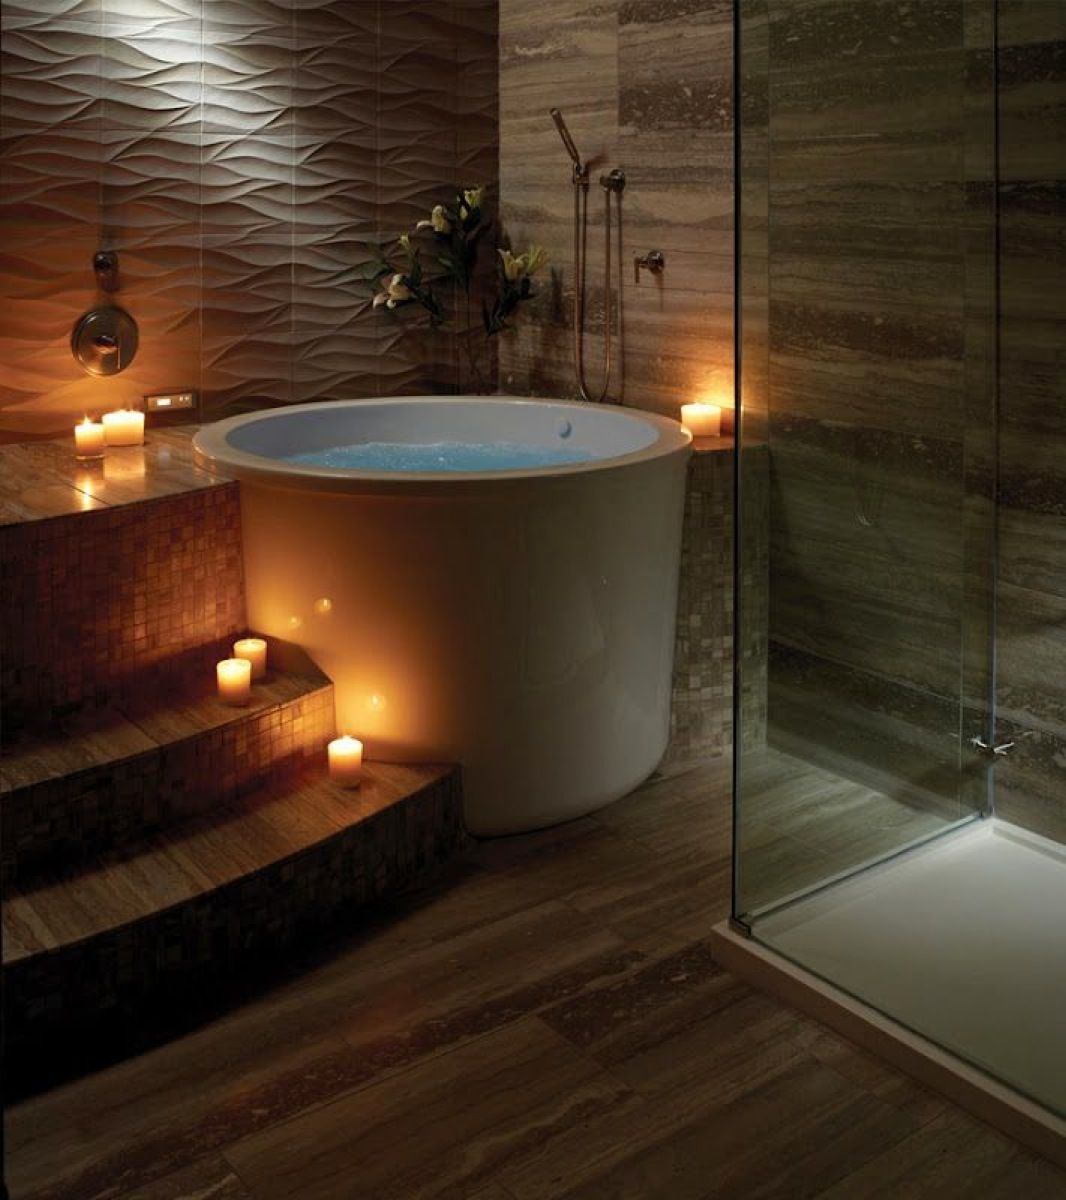 round soaking tub. Japanese-style Bathroom With Round Soaking Tub. More Tub A